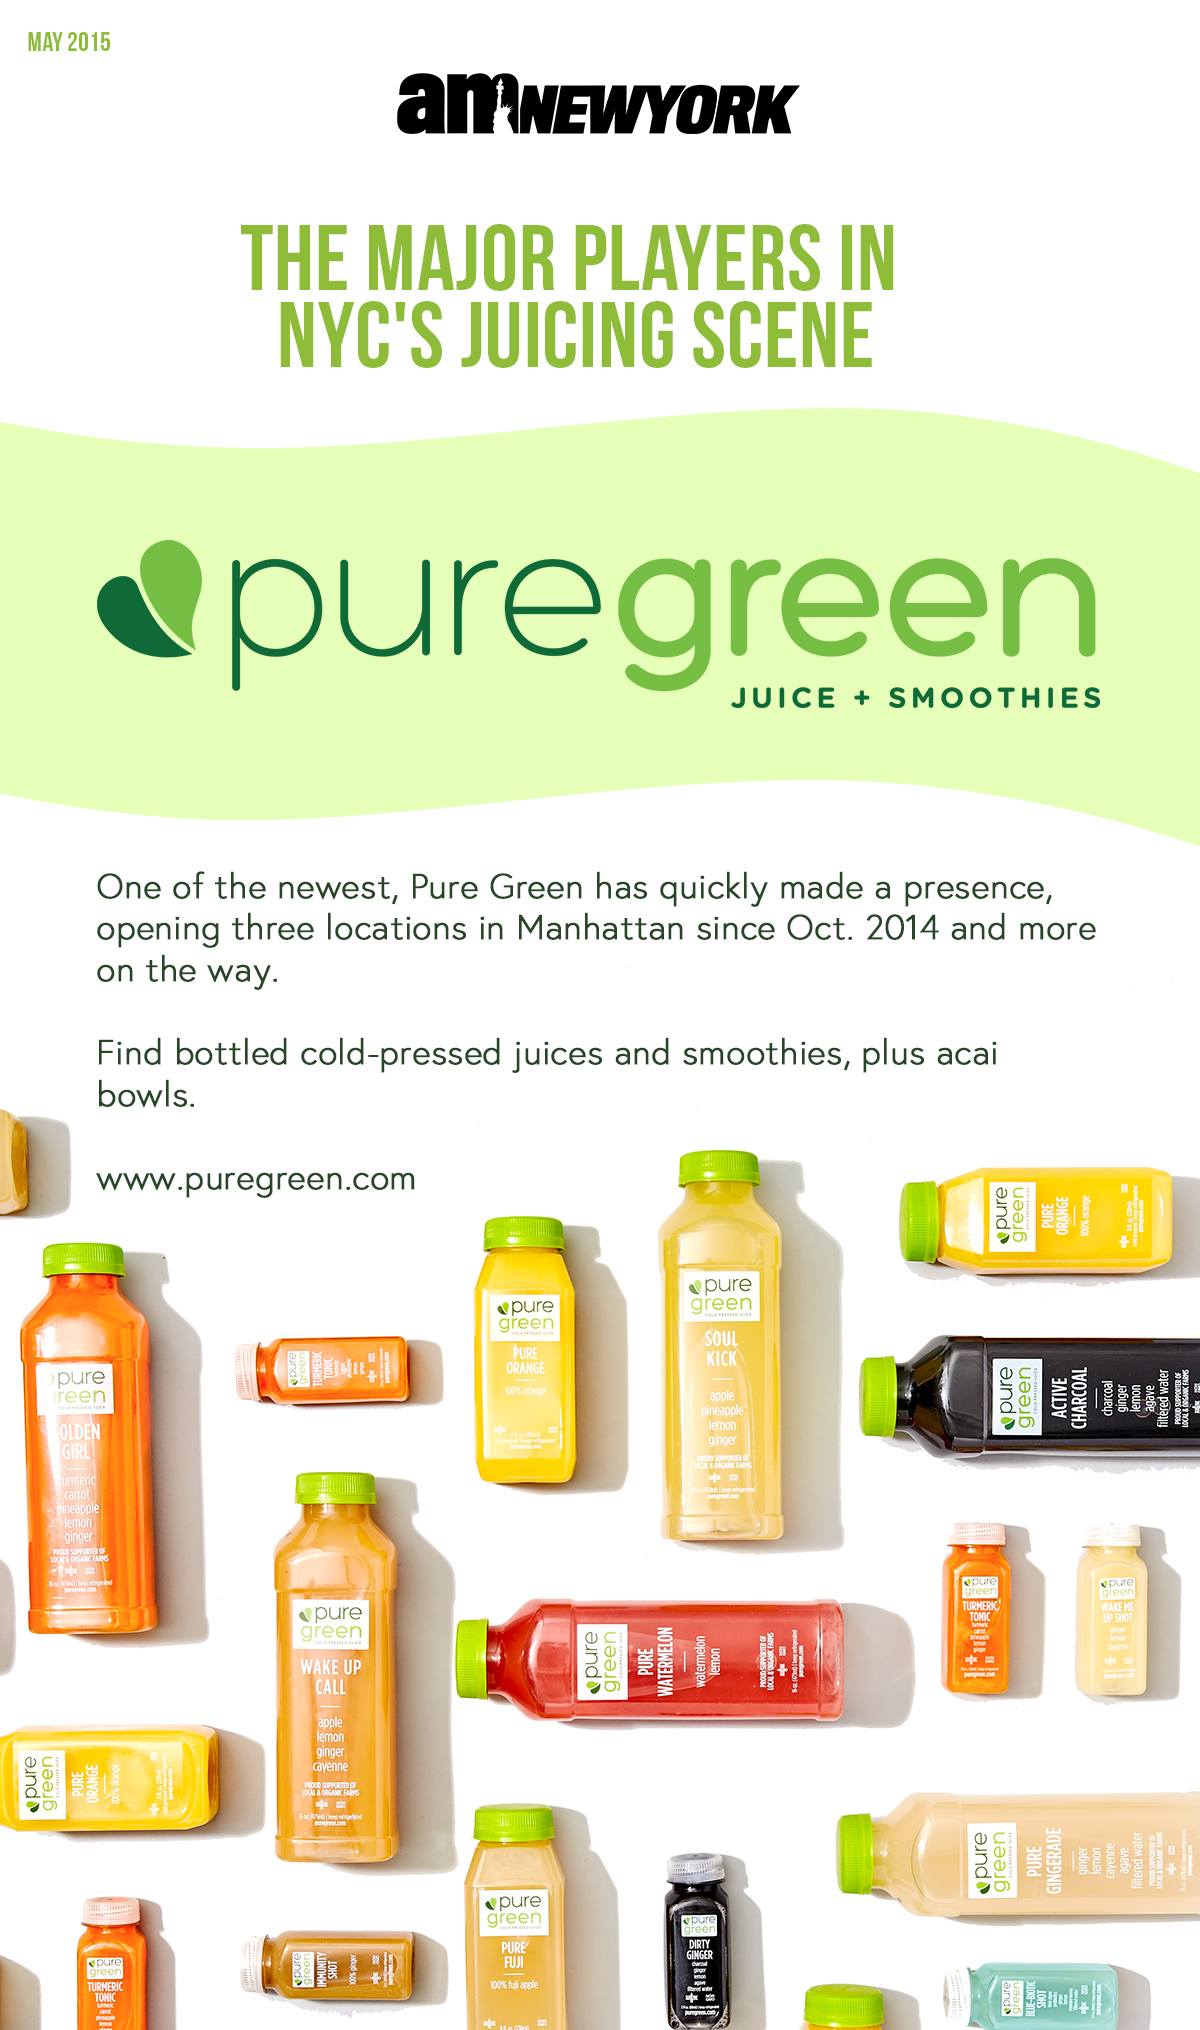 Pure Green is a major player in New York City's Cold Pressed Juice Scene.jpg